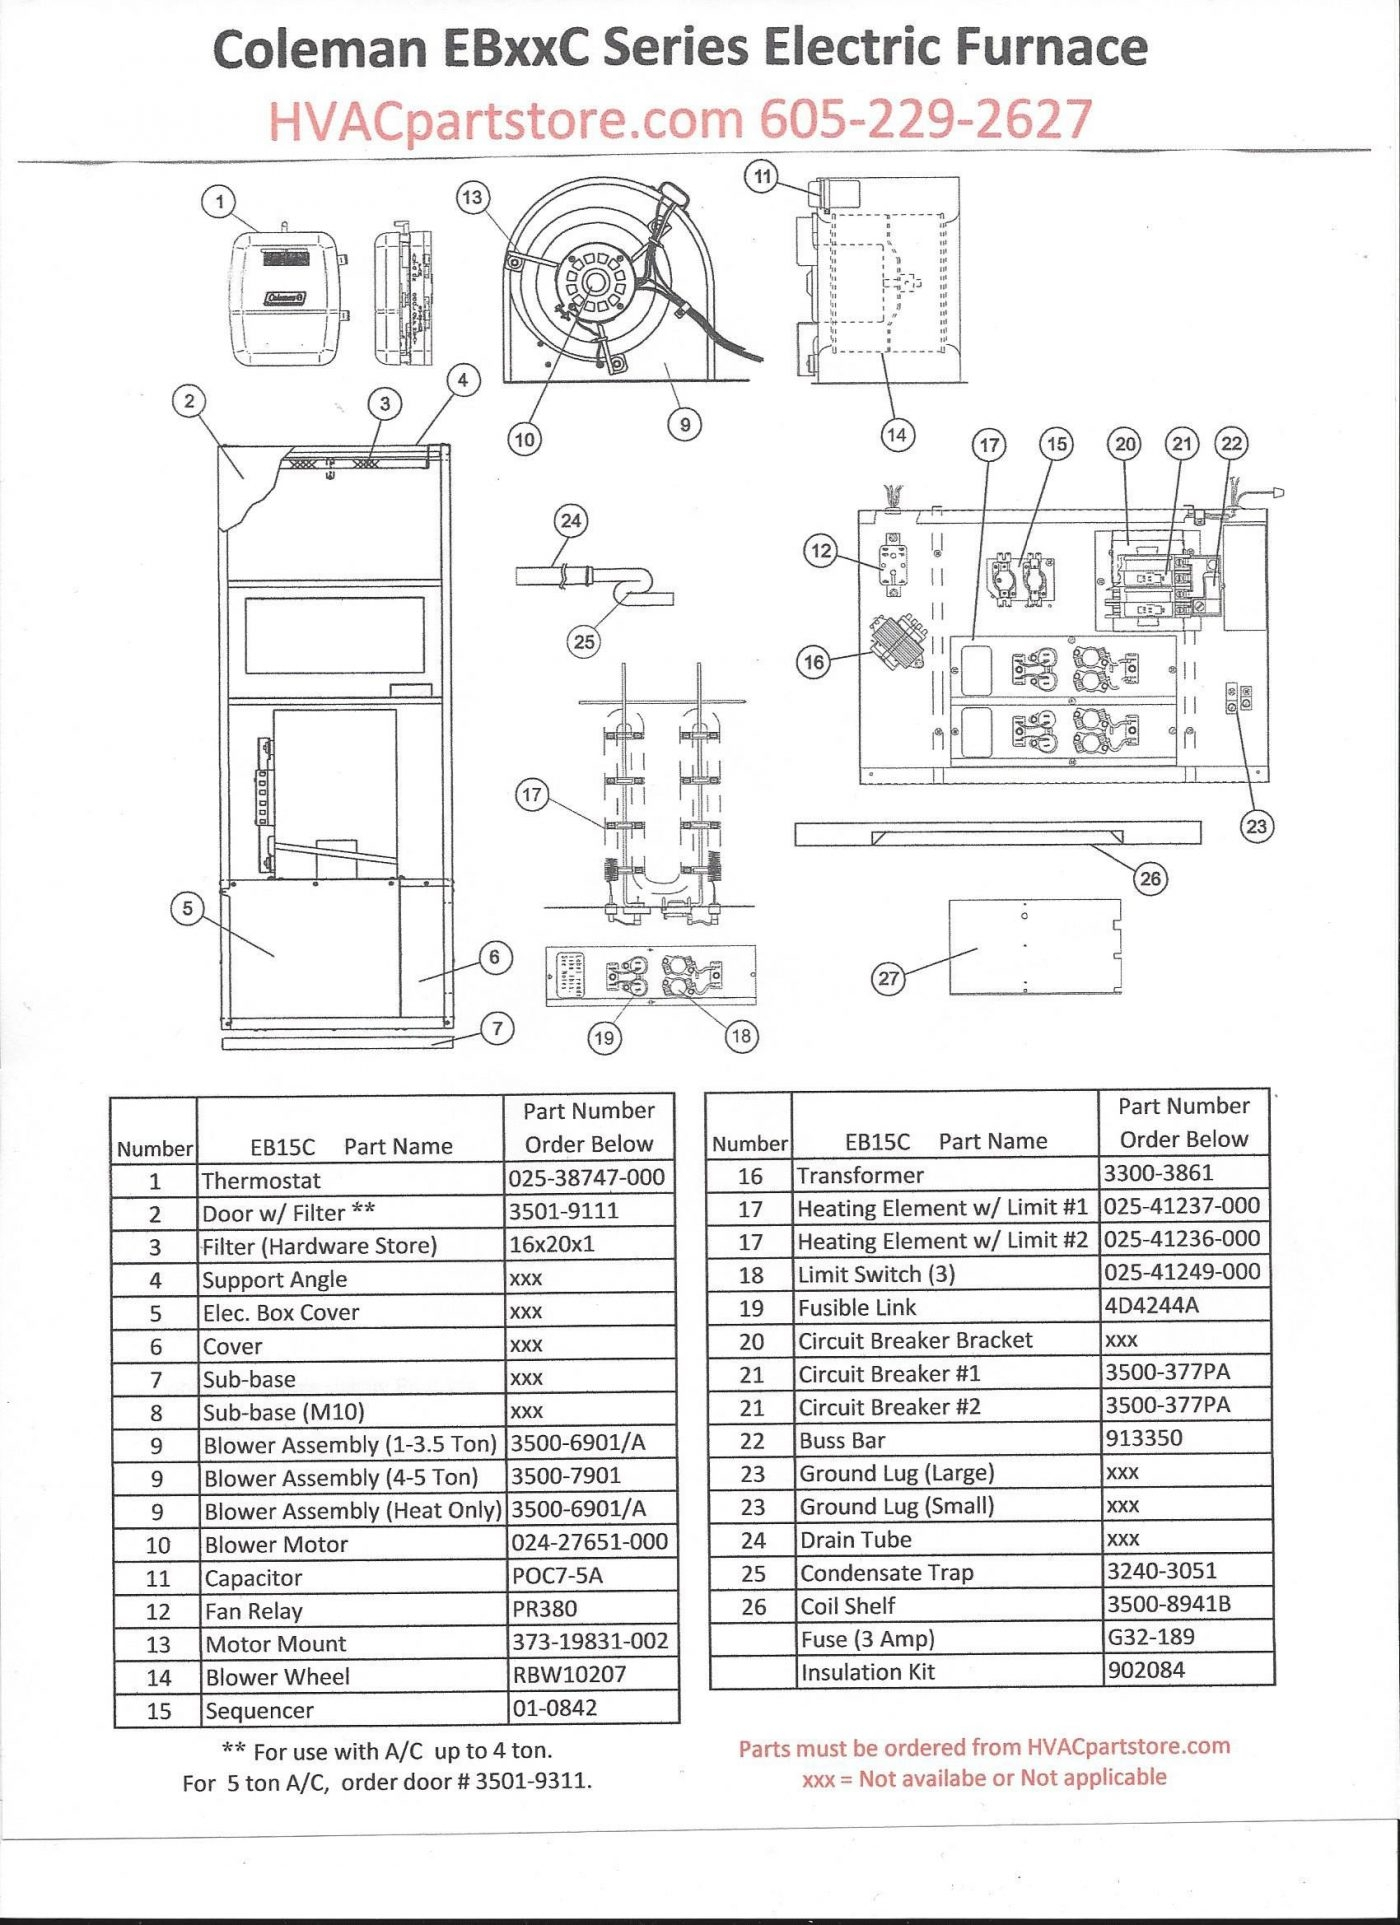 free download rg 370 wiring diagram tempstar heat pump wiring diagram | free wiring diagram